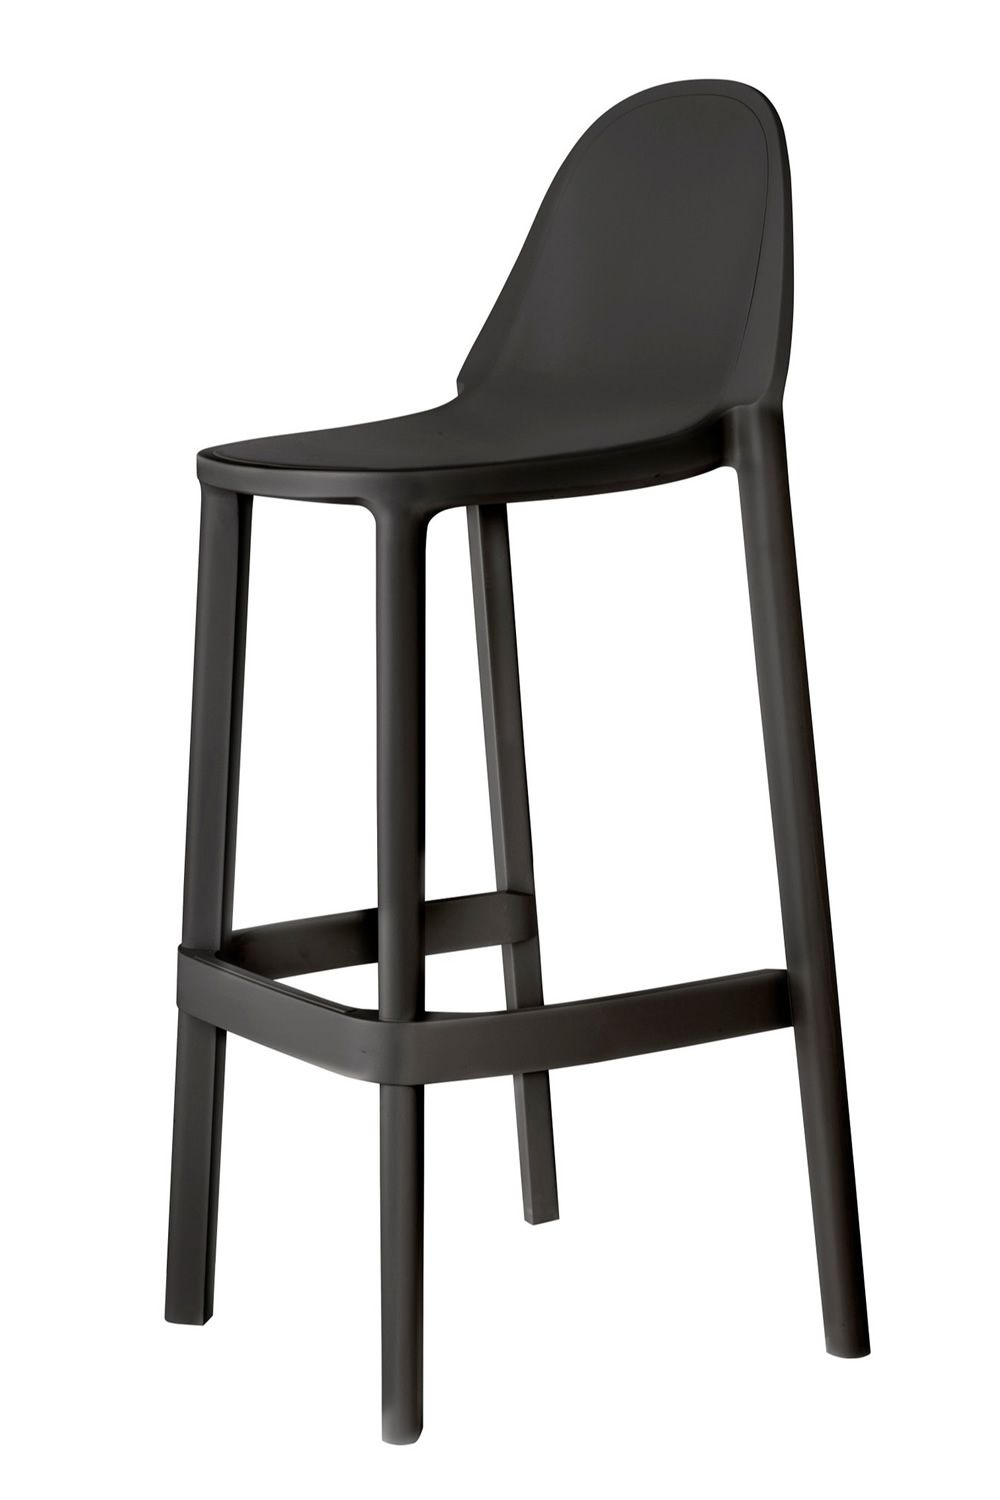 pi s 2337 tabouret en technopolym re hauteur de l 39 assise 65 ou 75 cm empilable disponible. Black Bedroom Furniture Sets. Home Design Ideas